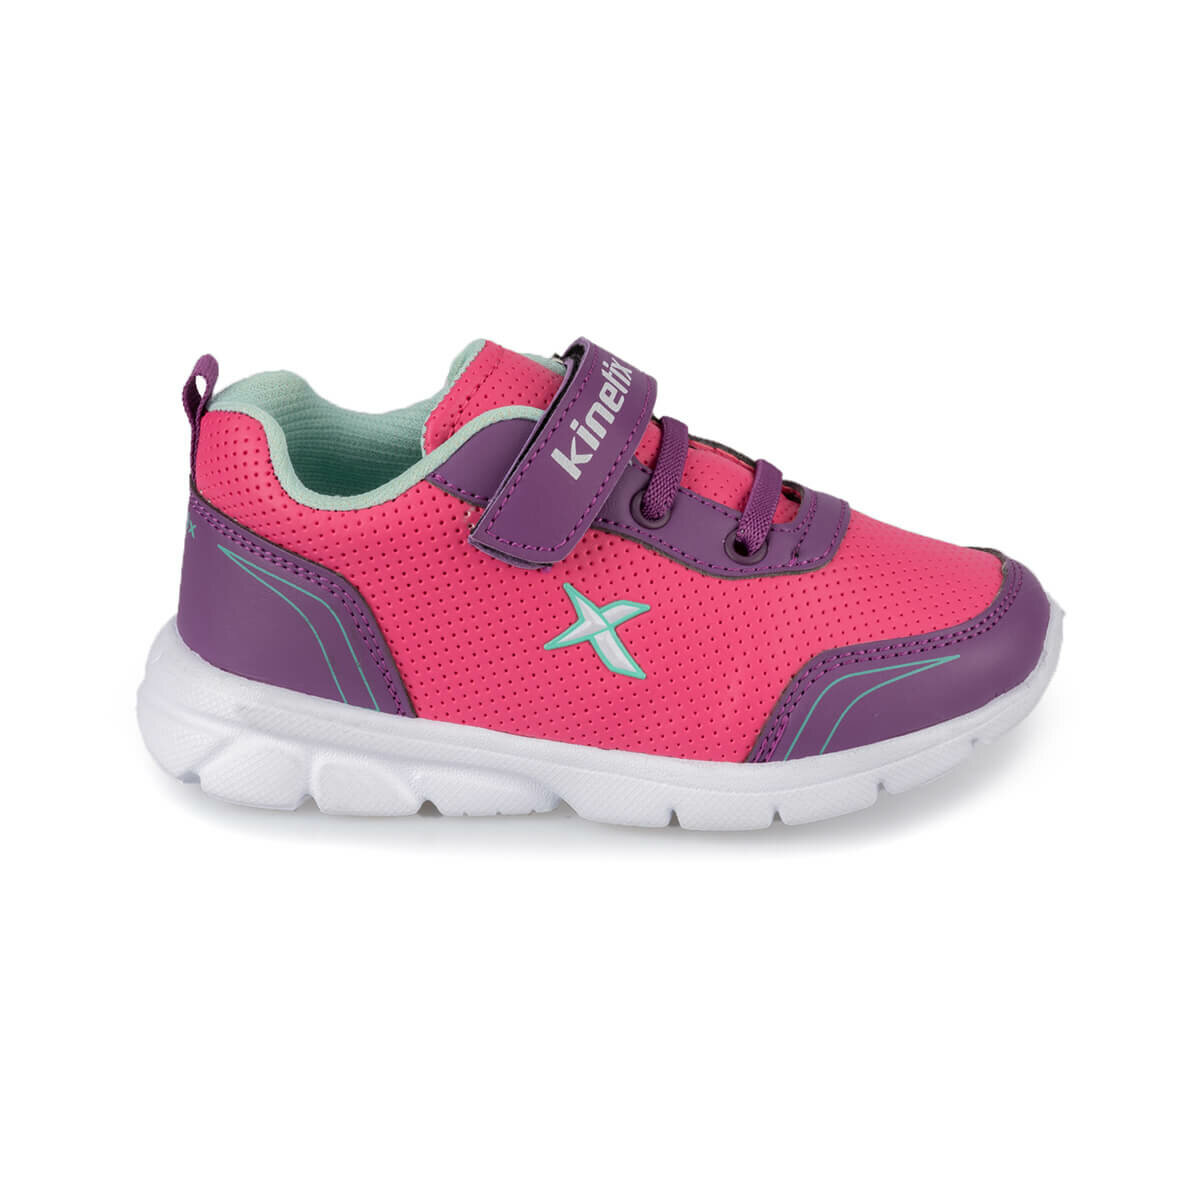 FLO NORIN 9PR Fuchsia Girls Child Outdoors KINETIX